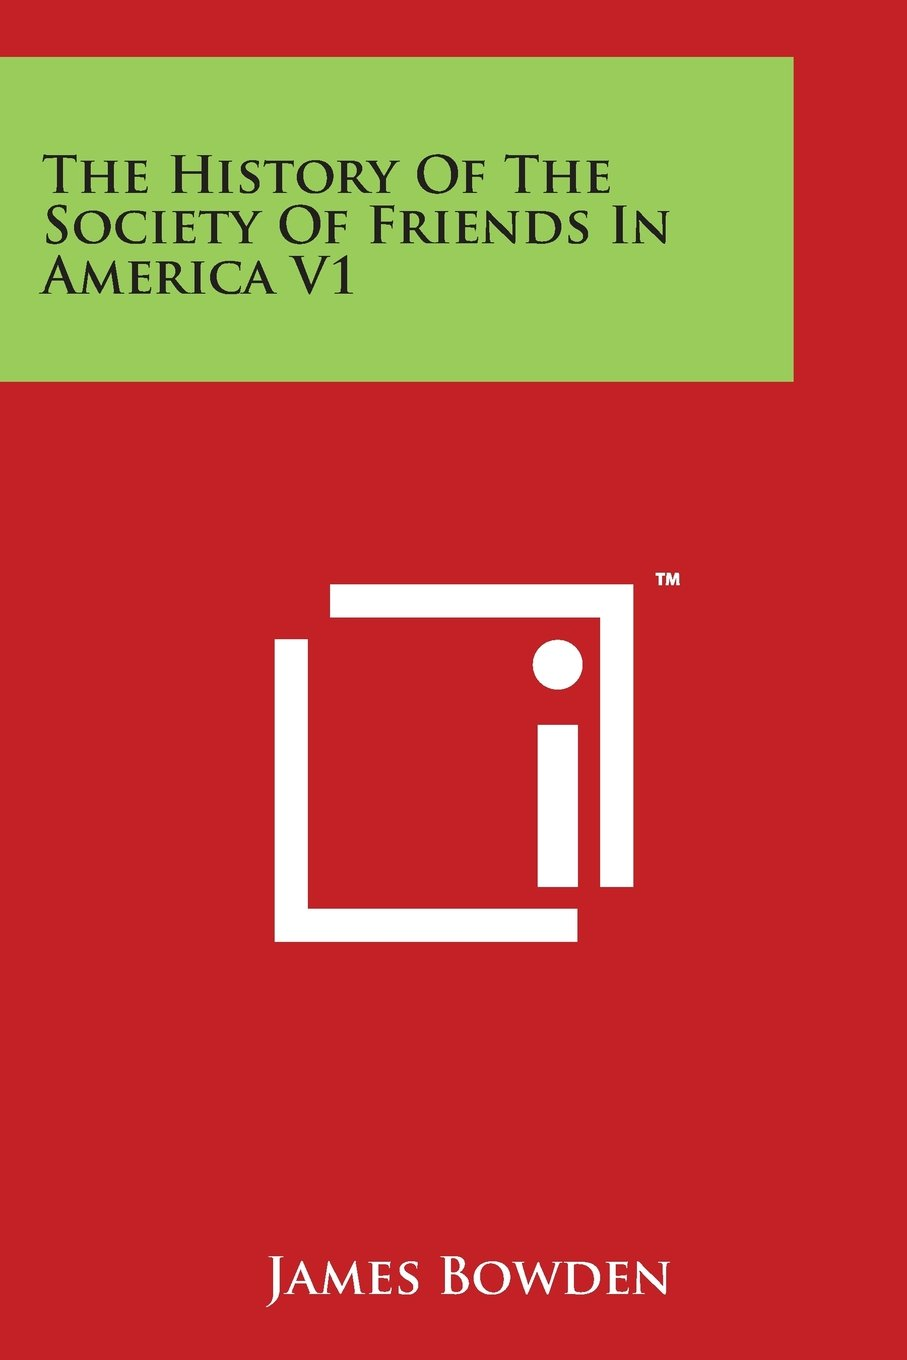 The History of the Society of Friends in America V1